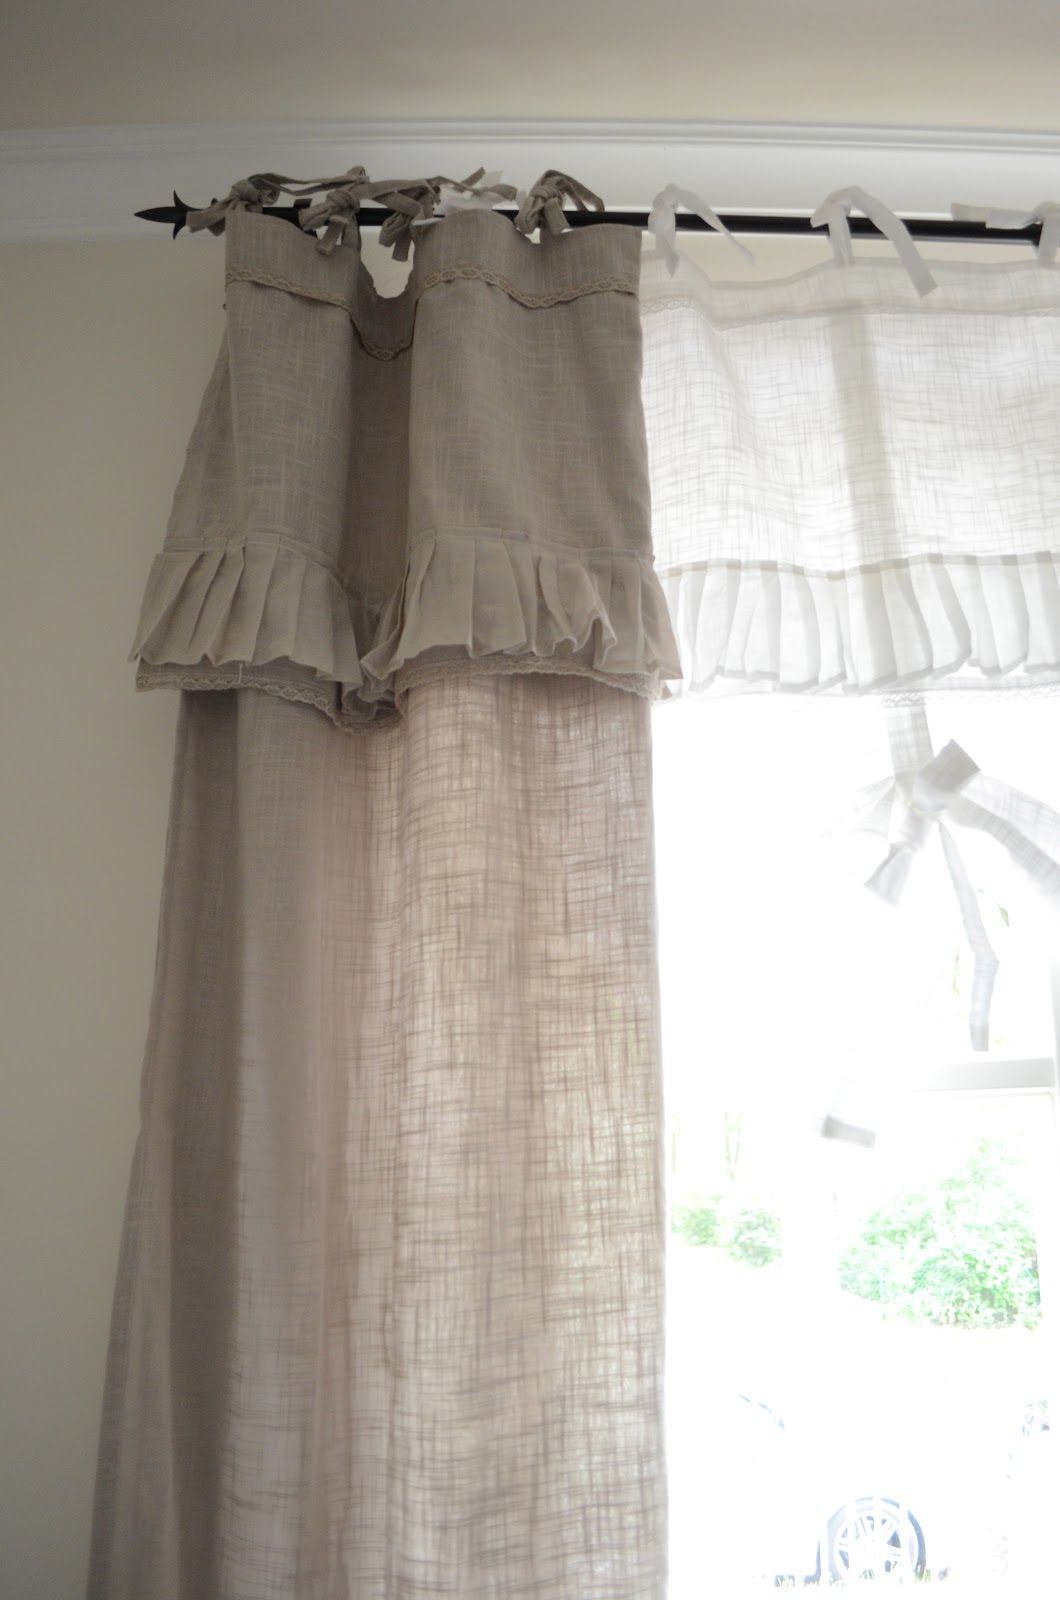 Schlafzimmer Gardinen Landhausstil Two Different Shades Of Linen But Without Ruffles Shabby Rose